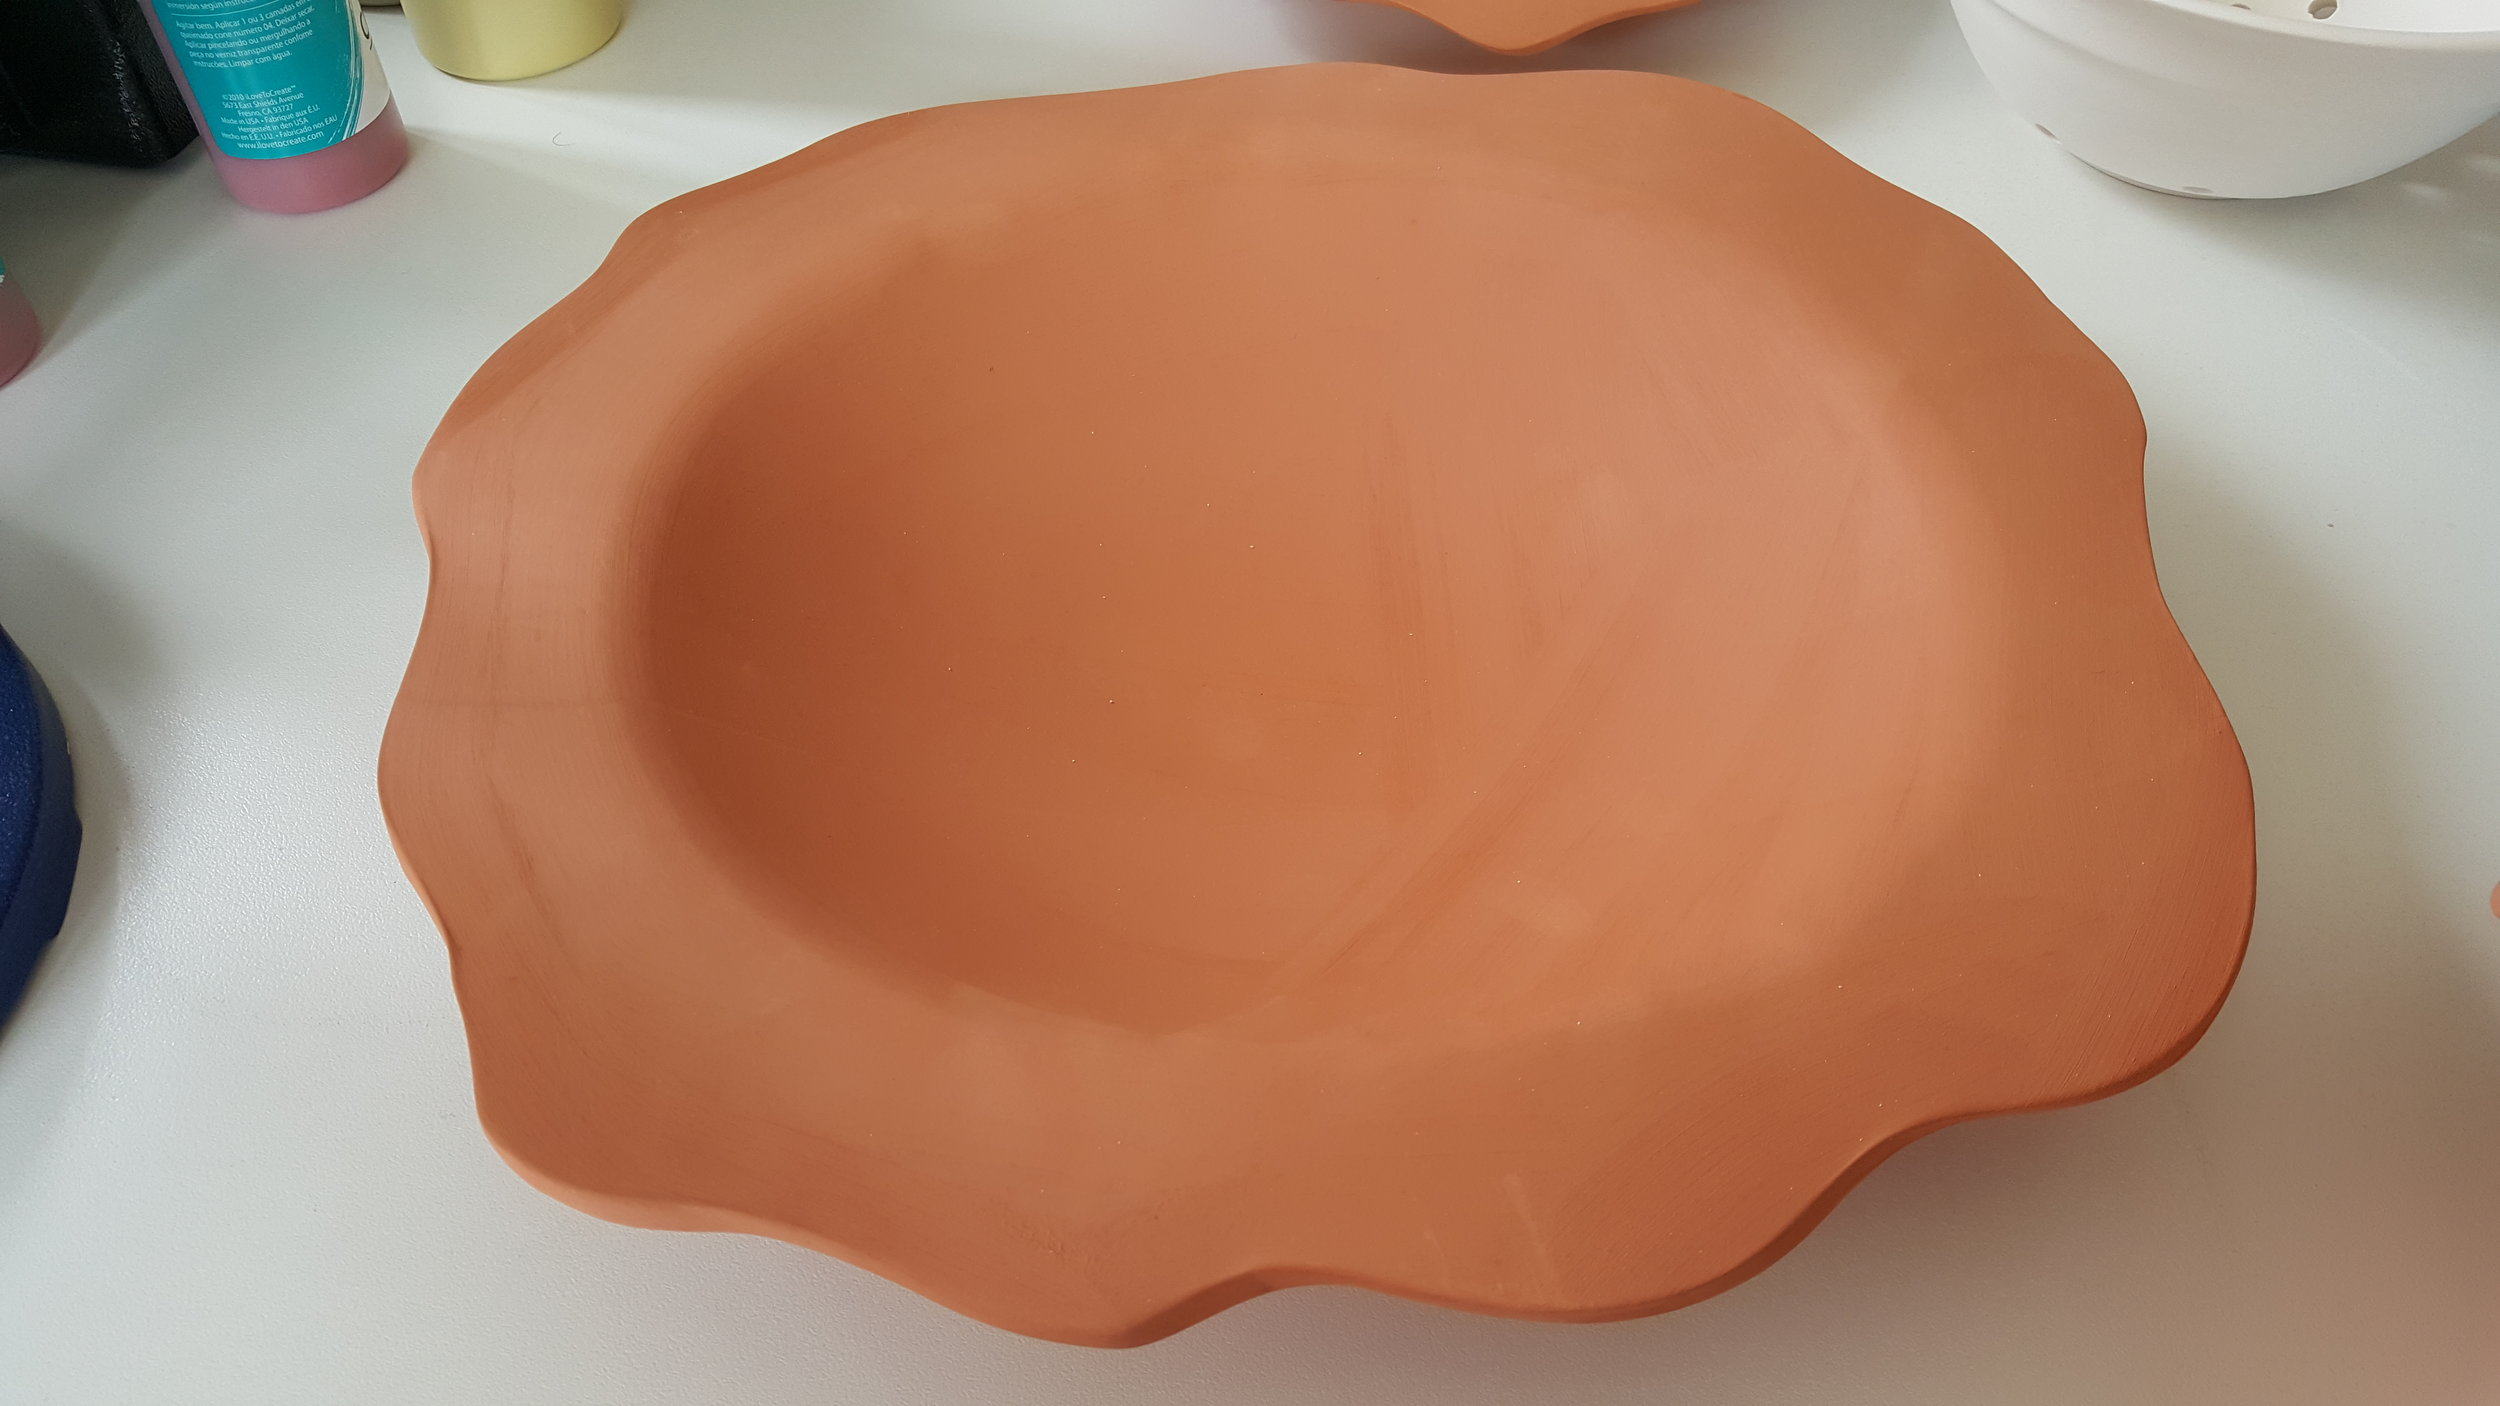 The bisque fired piece ready for glazing.